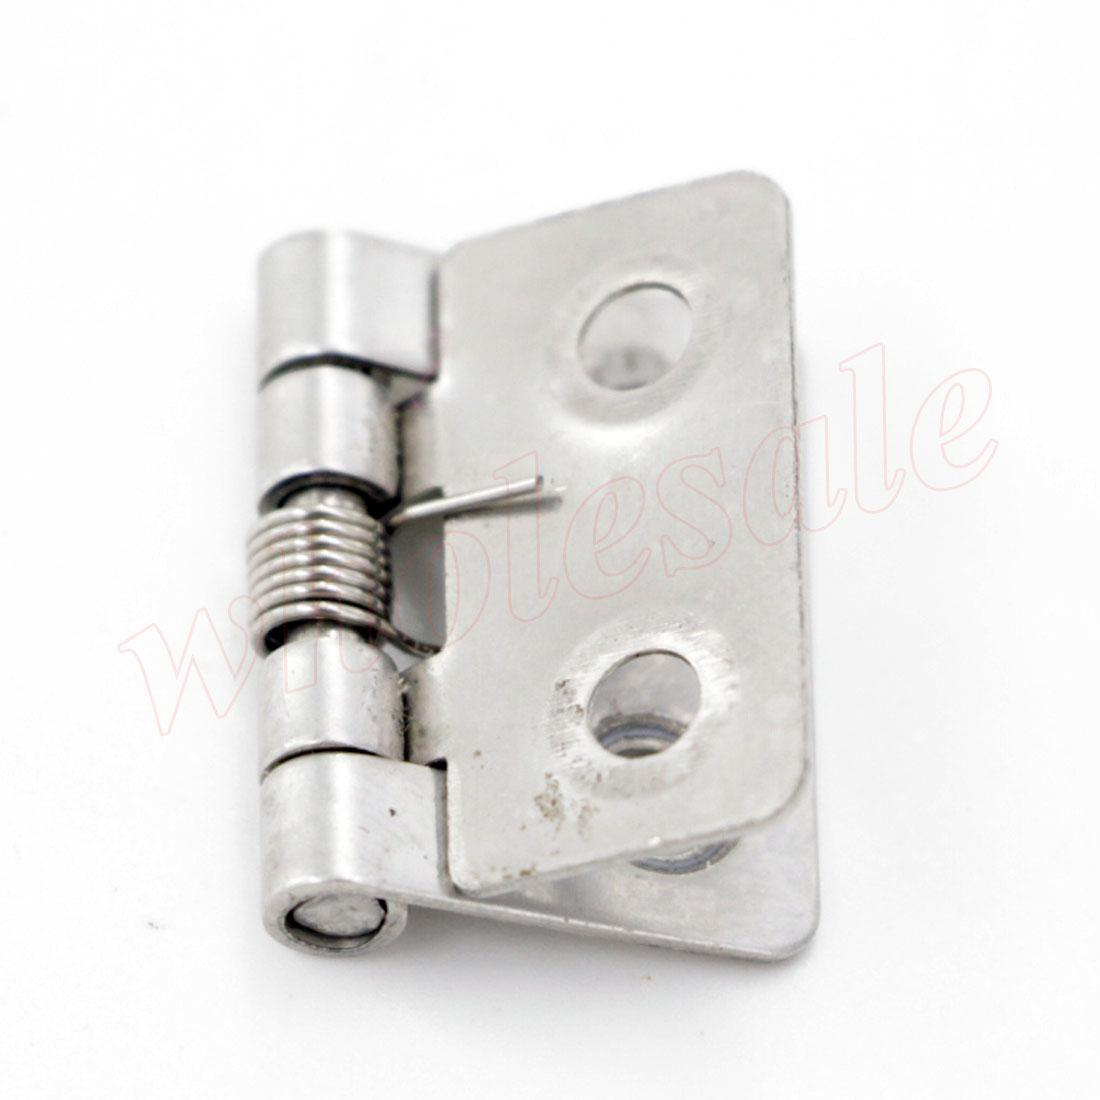 2018 Butt Door Hinges Stainless Steel Spring Loaded 33 X 25 X 5mm Hinges Cabinet Closet